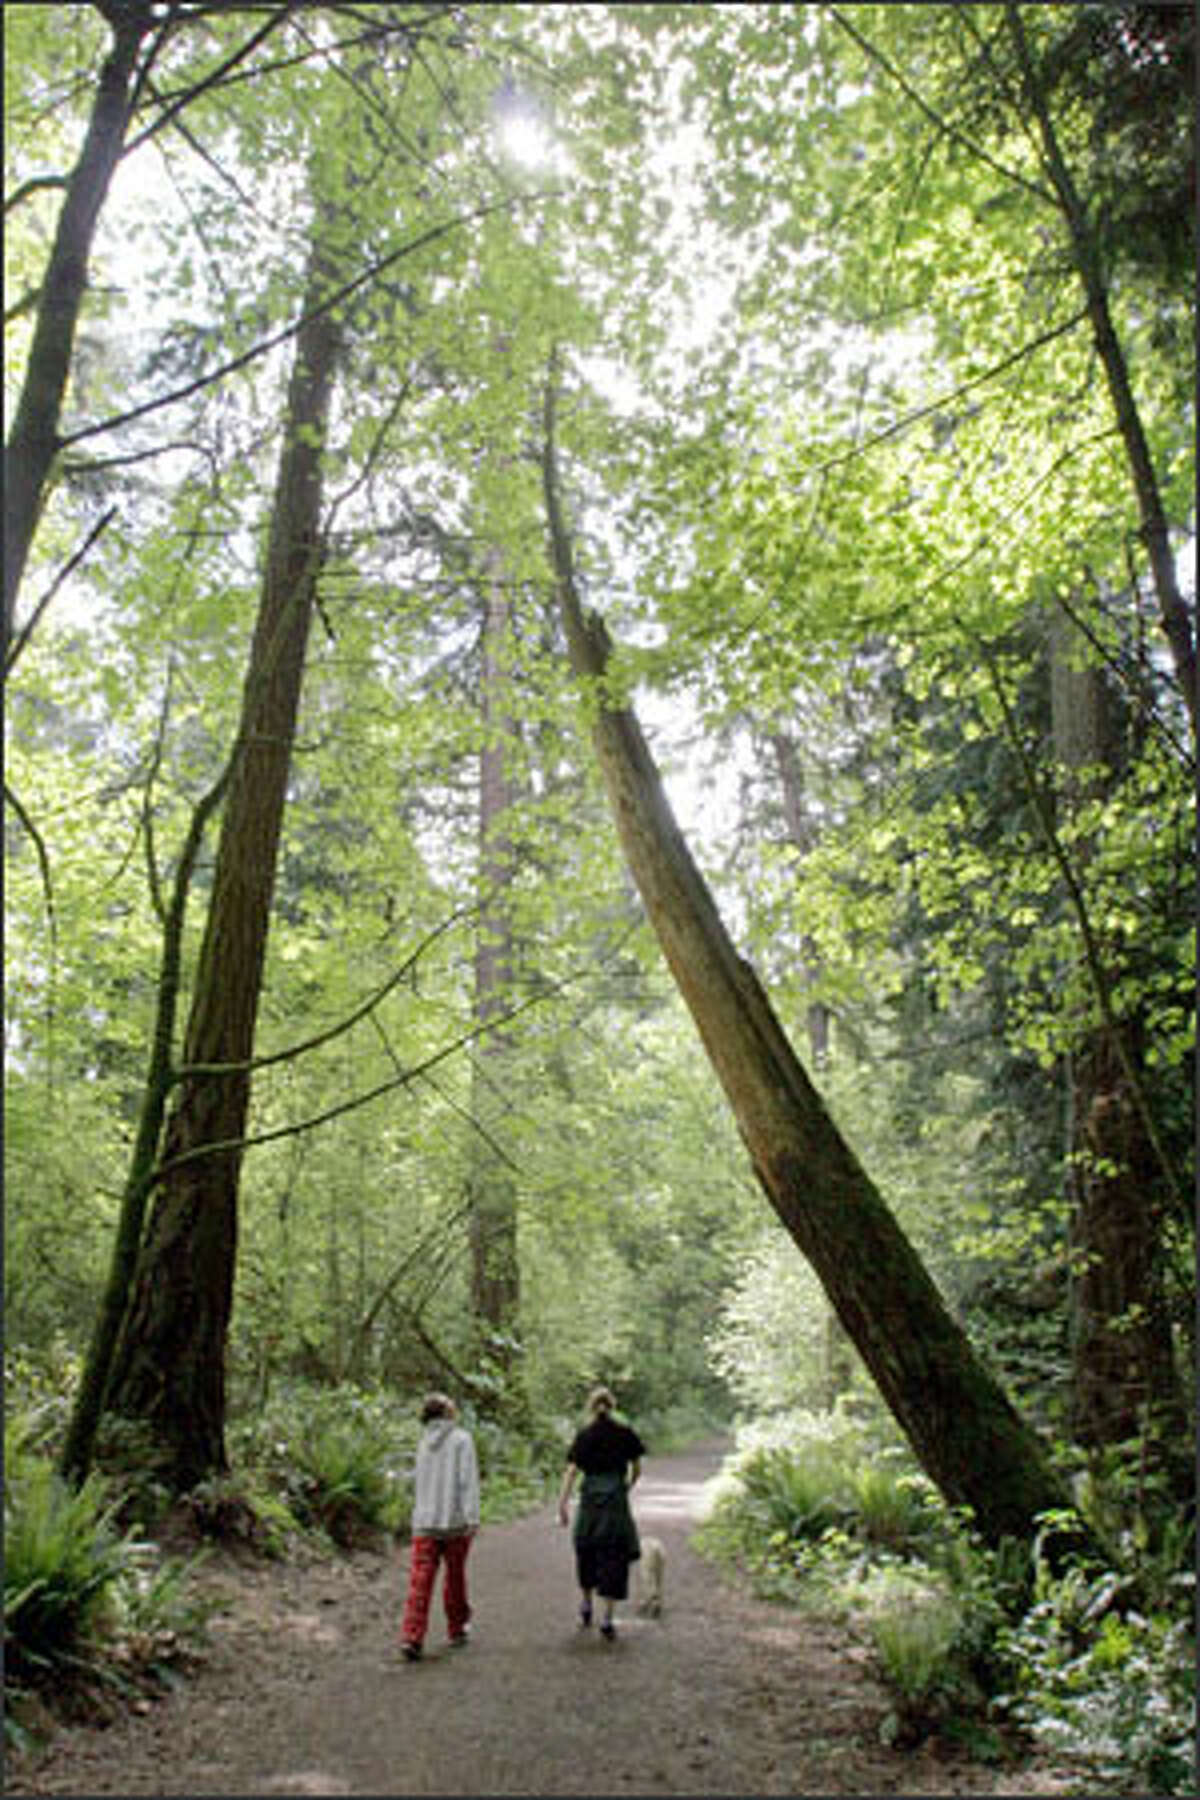 Seattle Parks and Recreation is worried about the risk from trees like the one at right in Seward Park. This section of trail is less popular than others, making it less likely that the tree will be cut down.